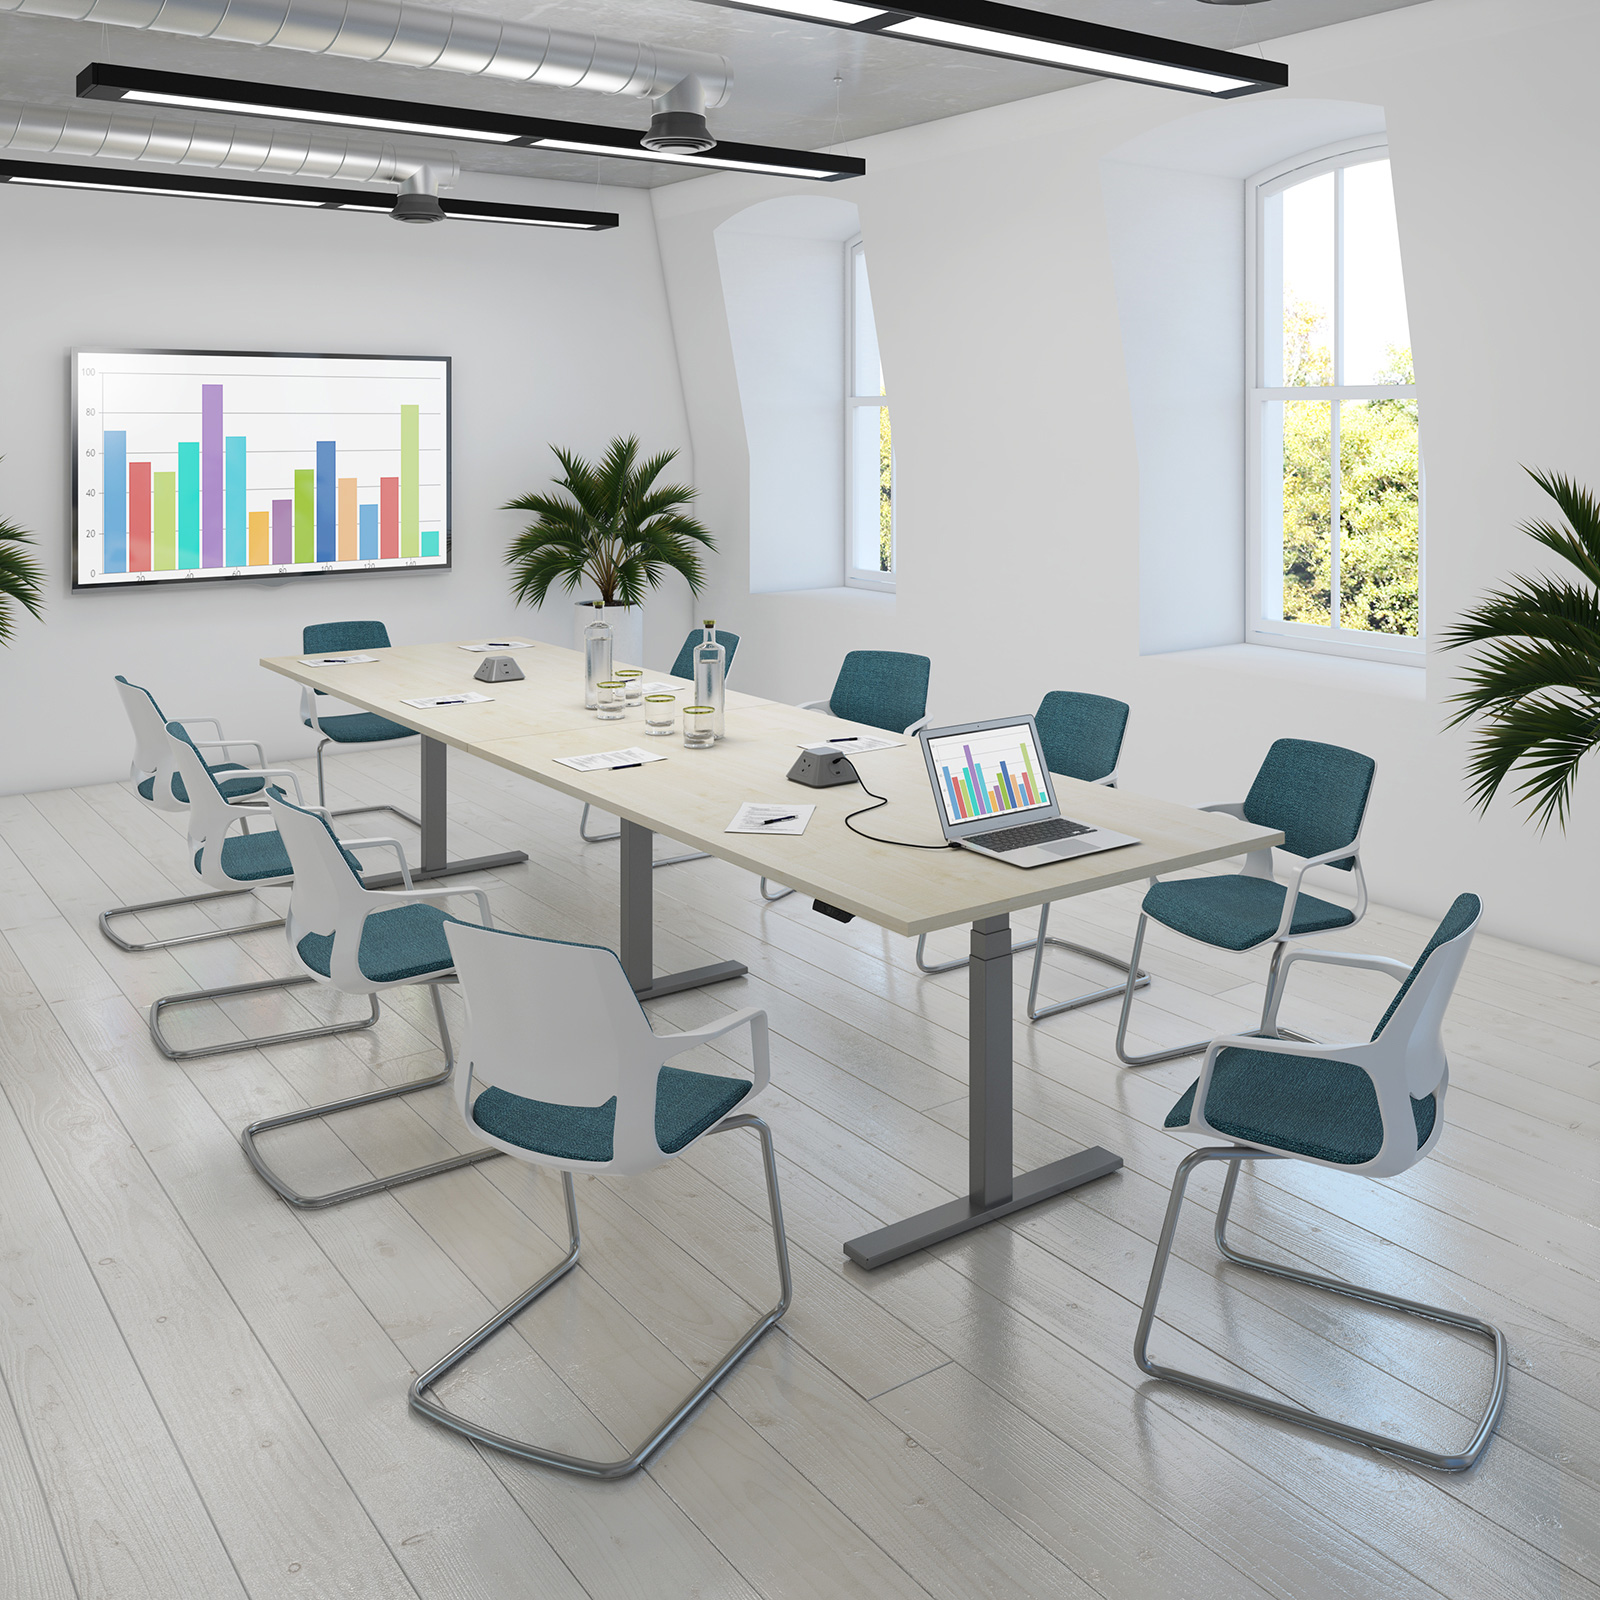 Elev8 Touch Sit-Stand Boardroom Tables